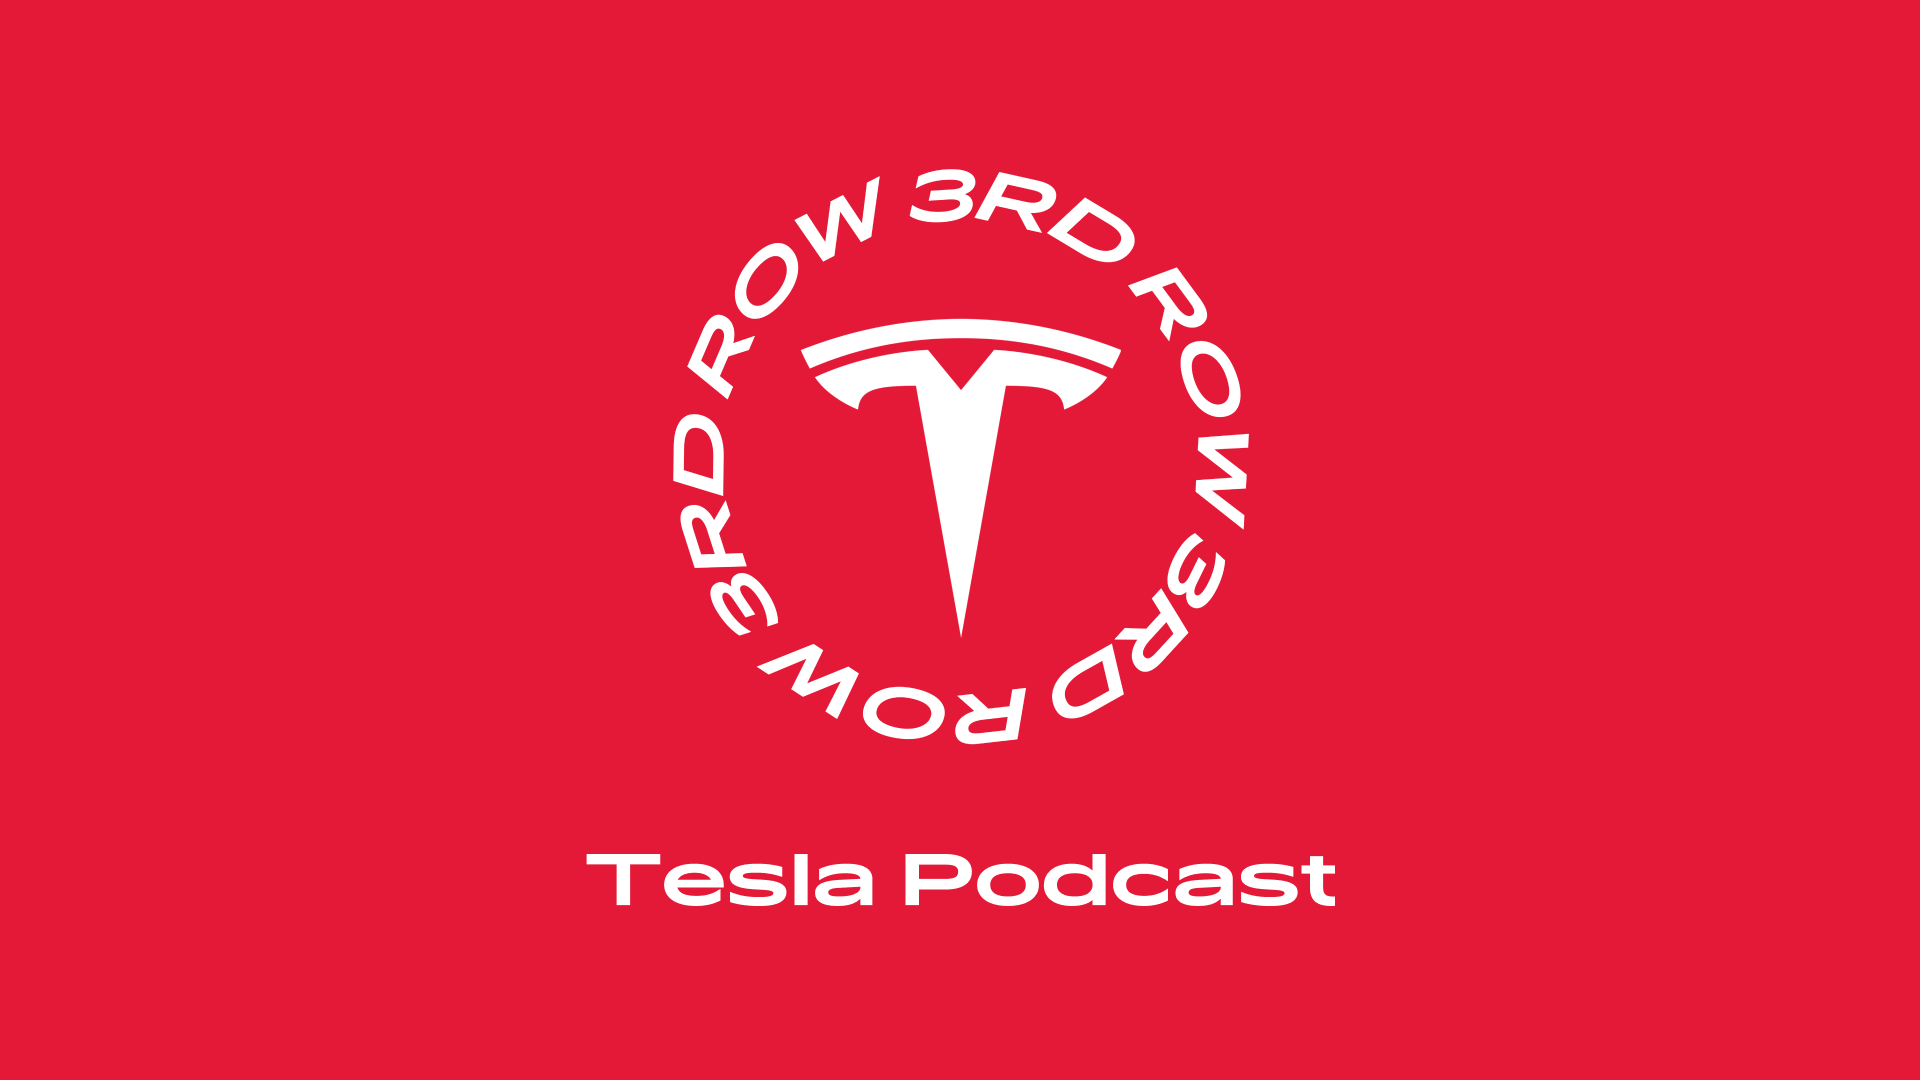 This week's episode of Third Row Tesla: A deep dive into what makes Tesla so unique, and what inspires its community